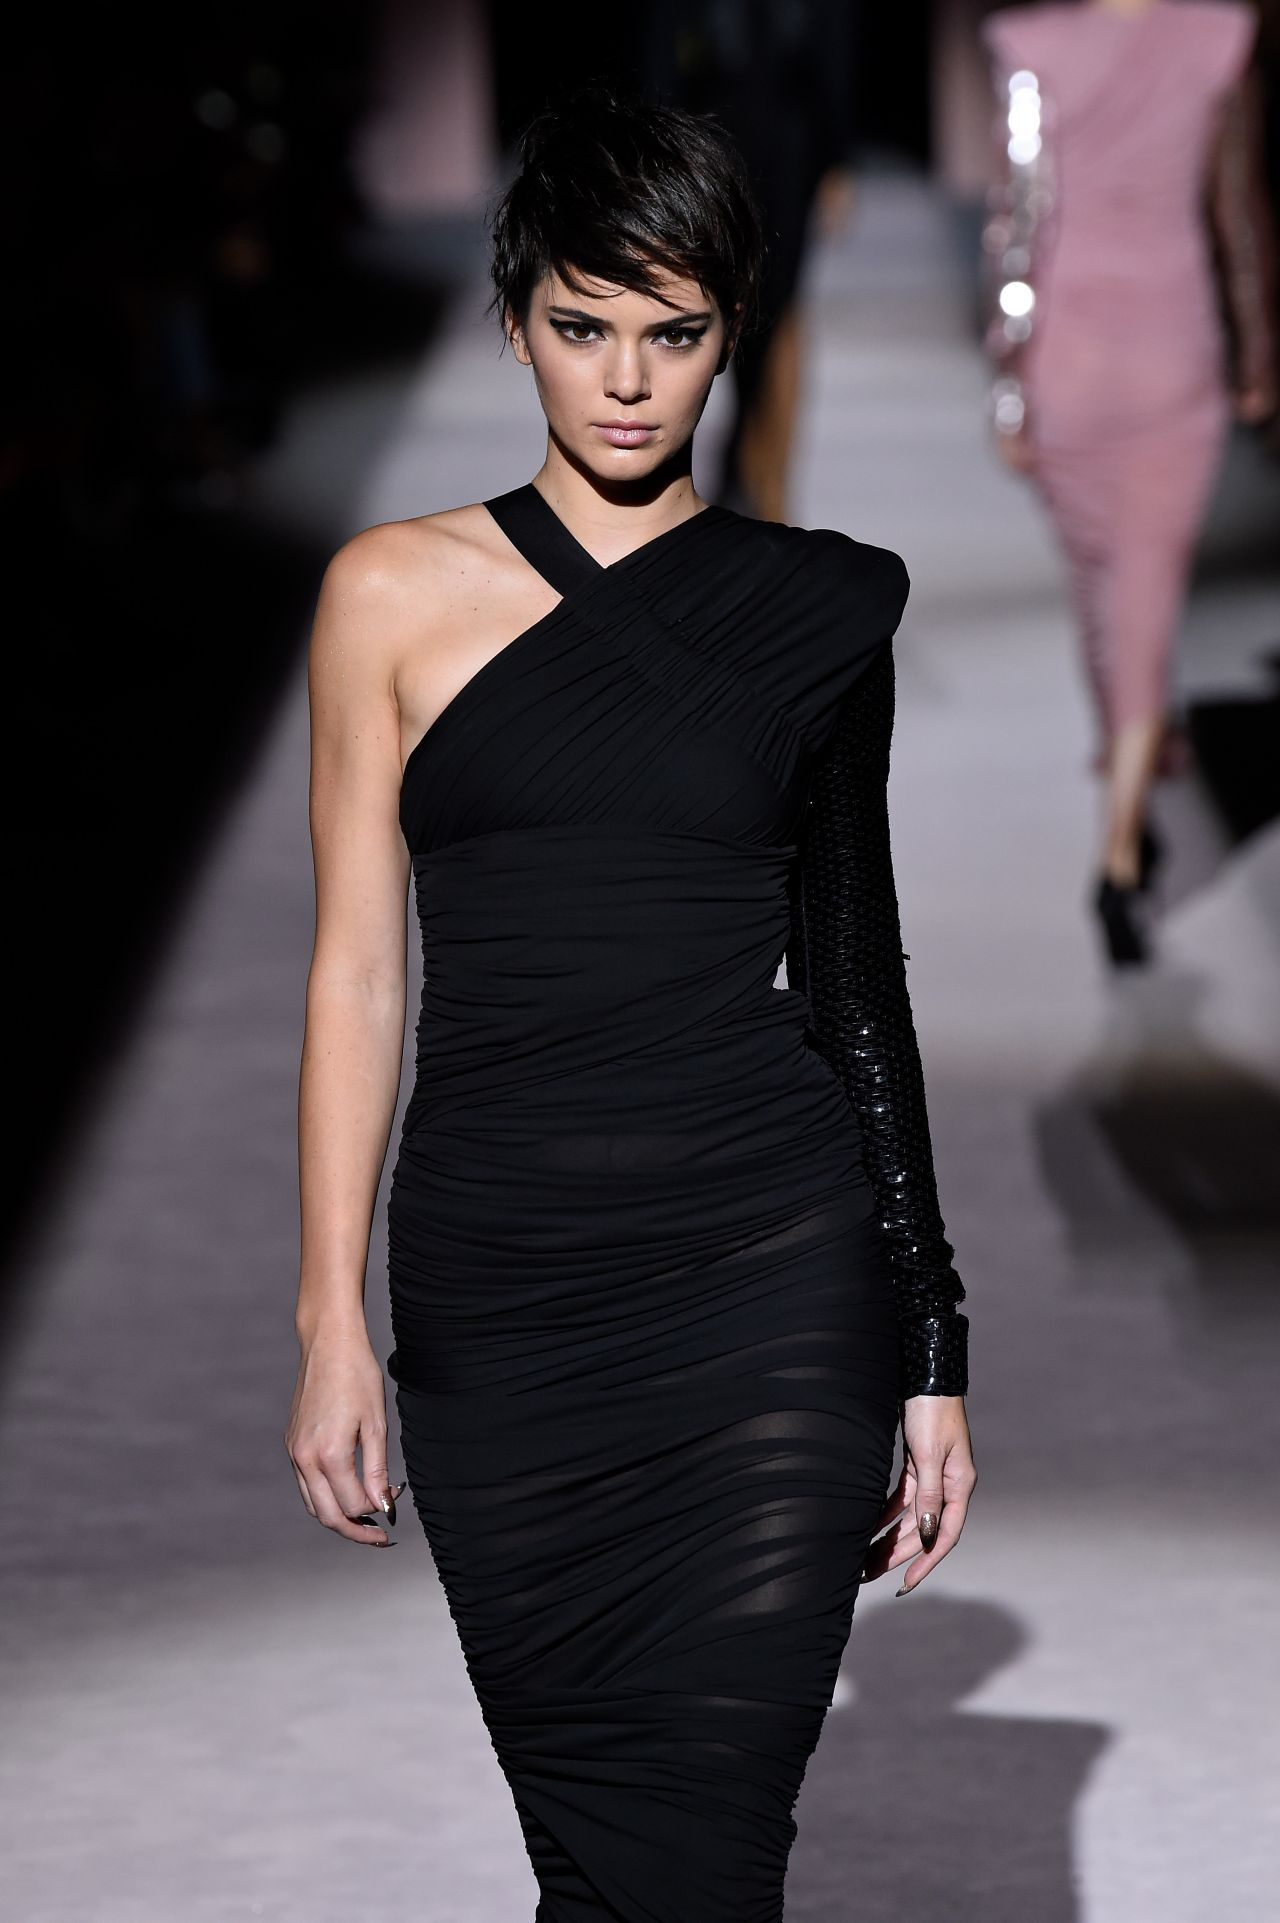 kendall jenner walks tom ford spring summer 2018 show nyfw in nyc 09 06 2017. Black Bedroom Furniture Sets. Home Design Ideas